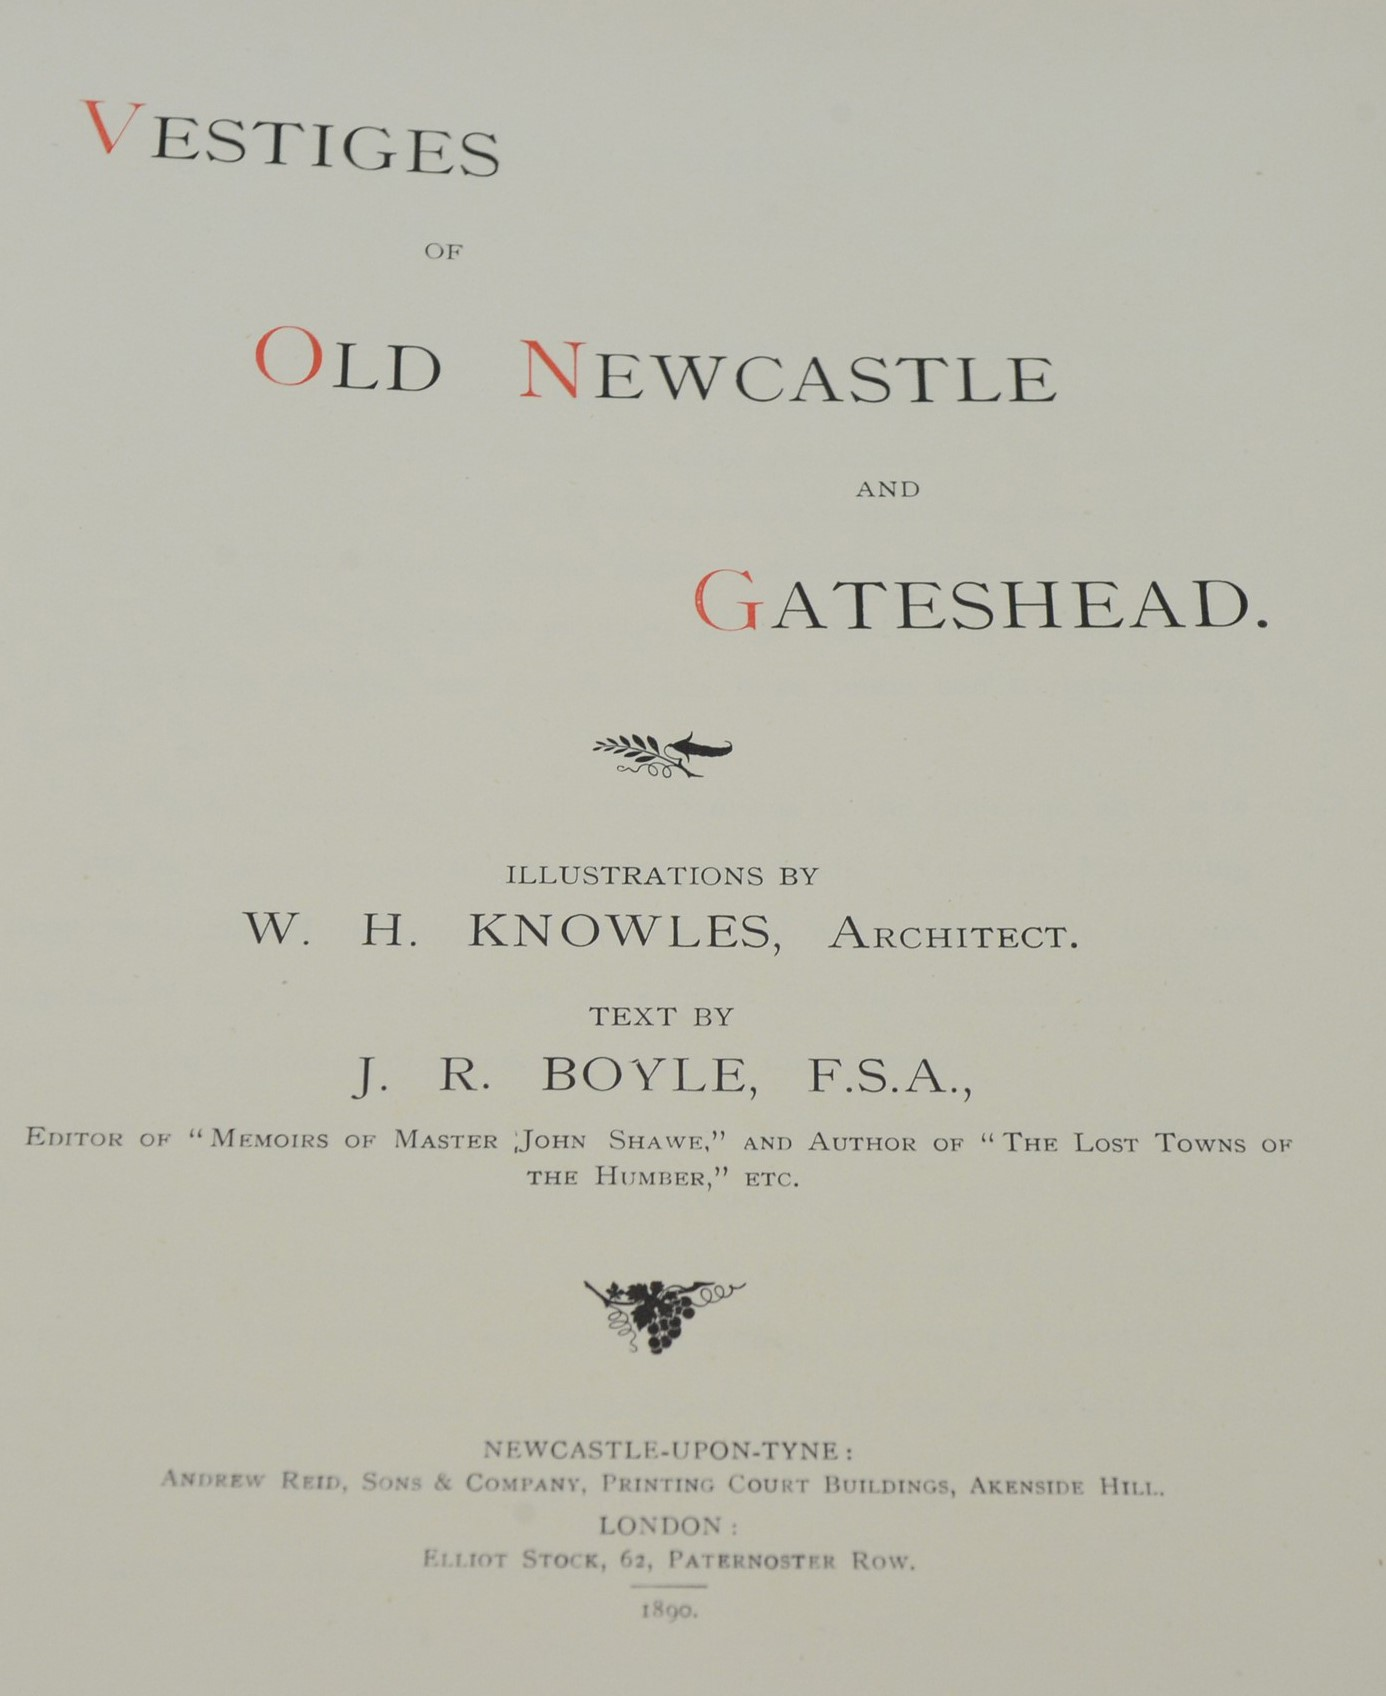 Knowles (W.H.) and Boyle (J.R.) and other Authors on Northumbrian interest. - Image 2 of 4